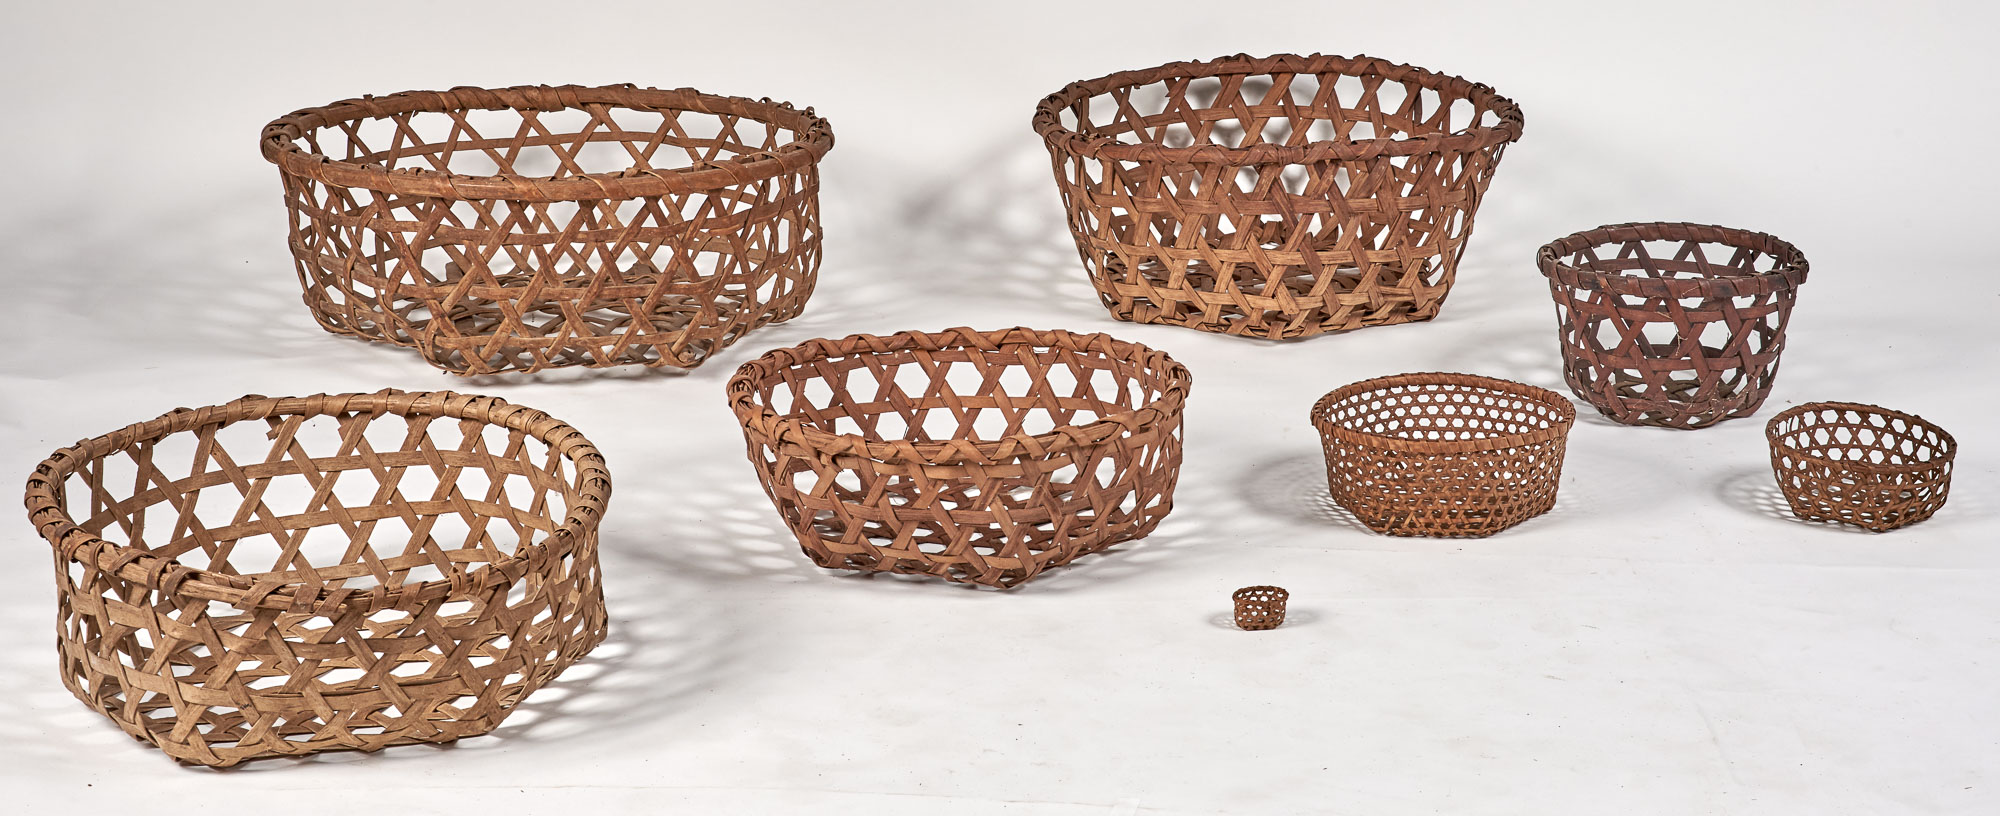 Lot image - Group of Eight Woven Splint Cheese Baskets